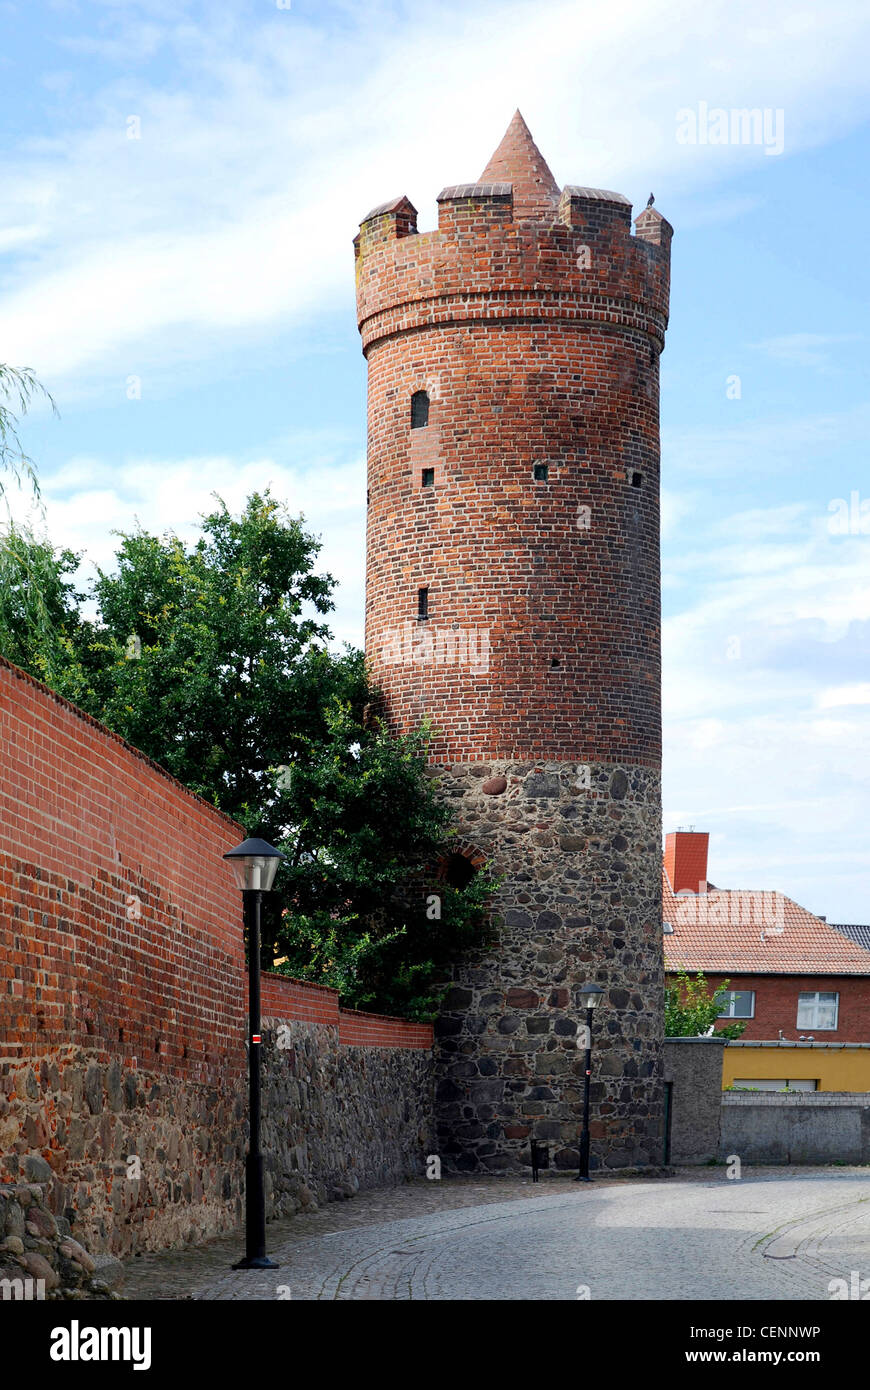 City wall of Jueterbog with the gate Frauentor in the historical centre of the Brandenburg town. - Stock Image